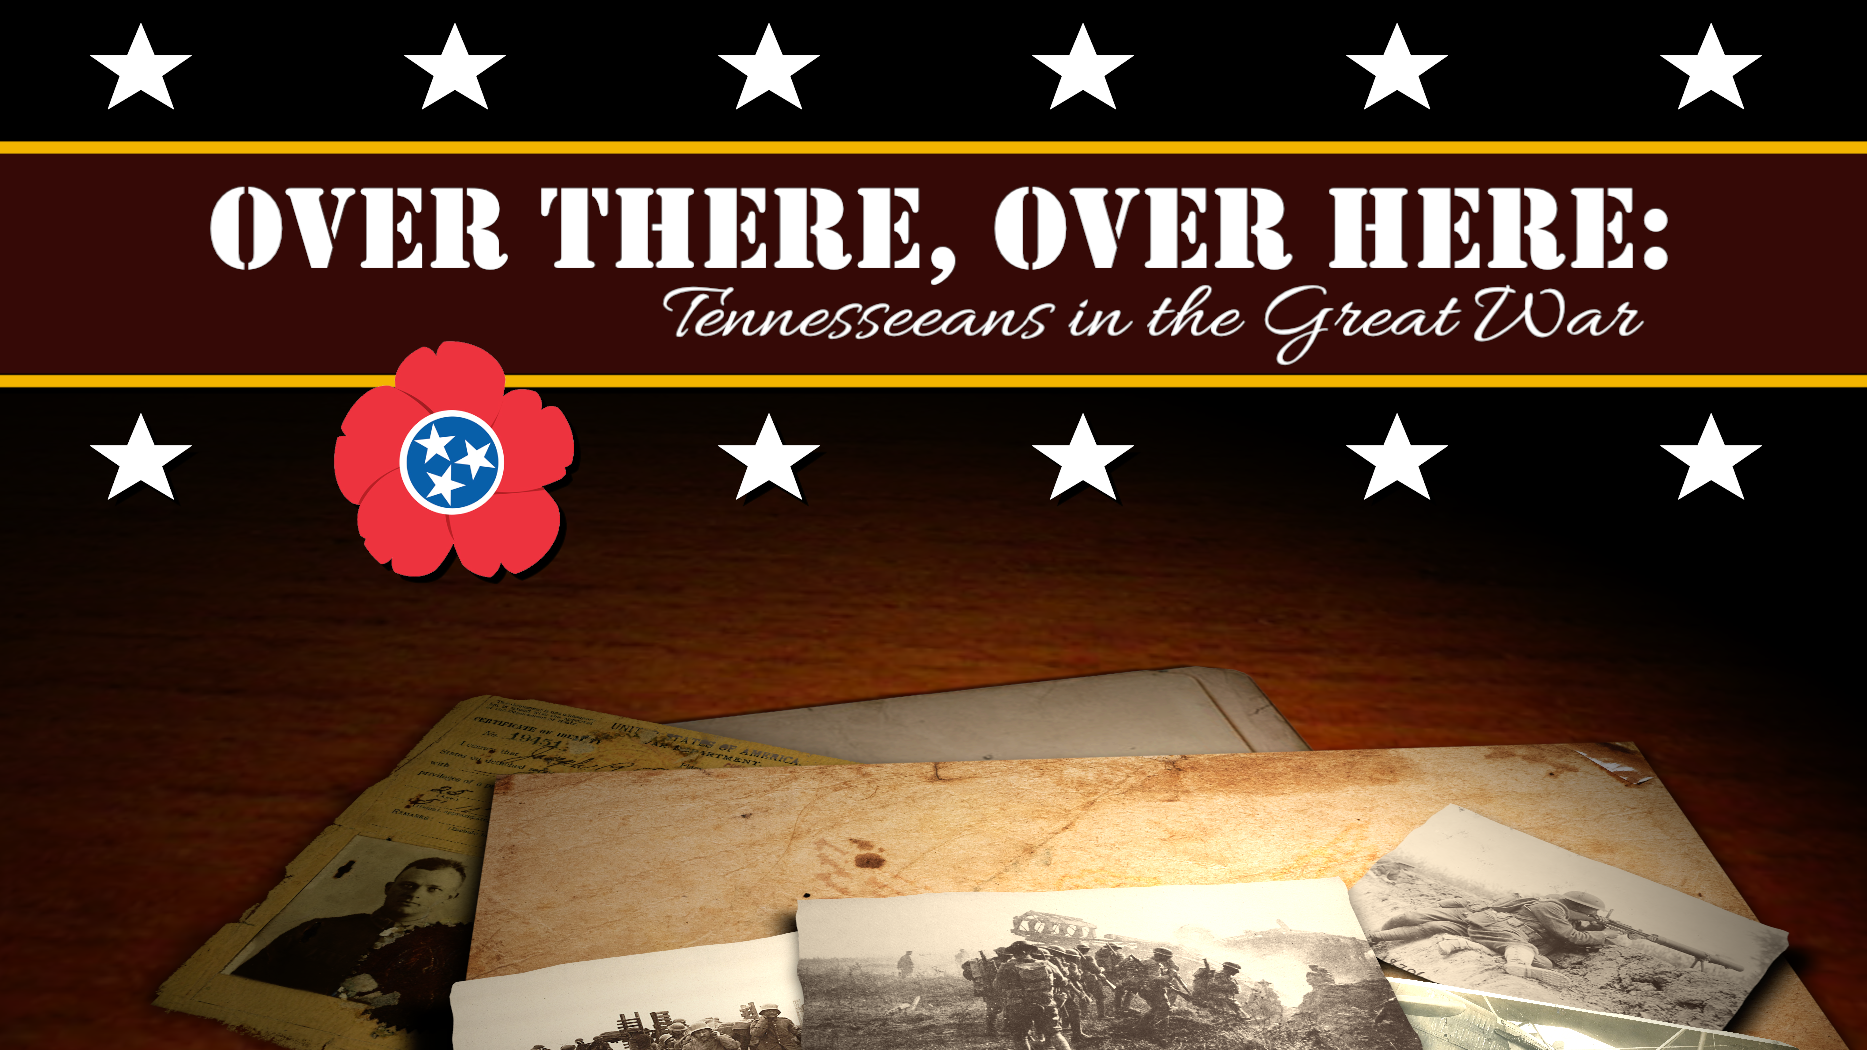 Over There, Over Here: Tennesseans in the Great War